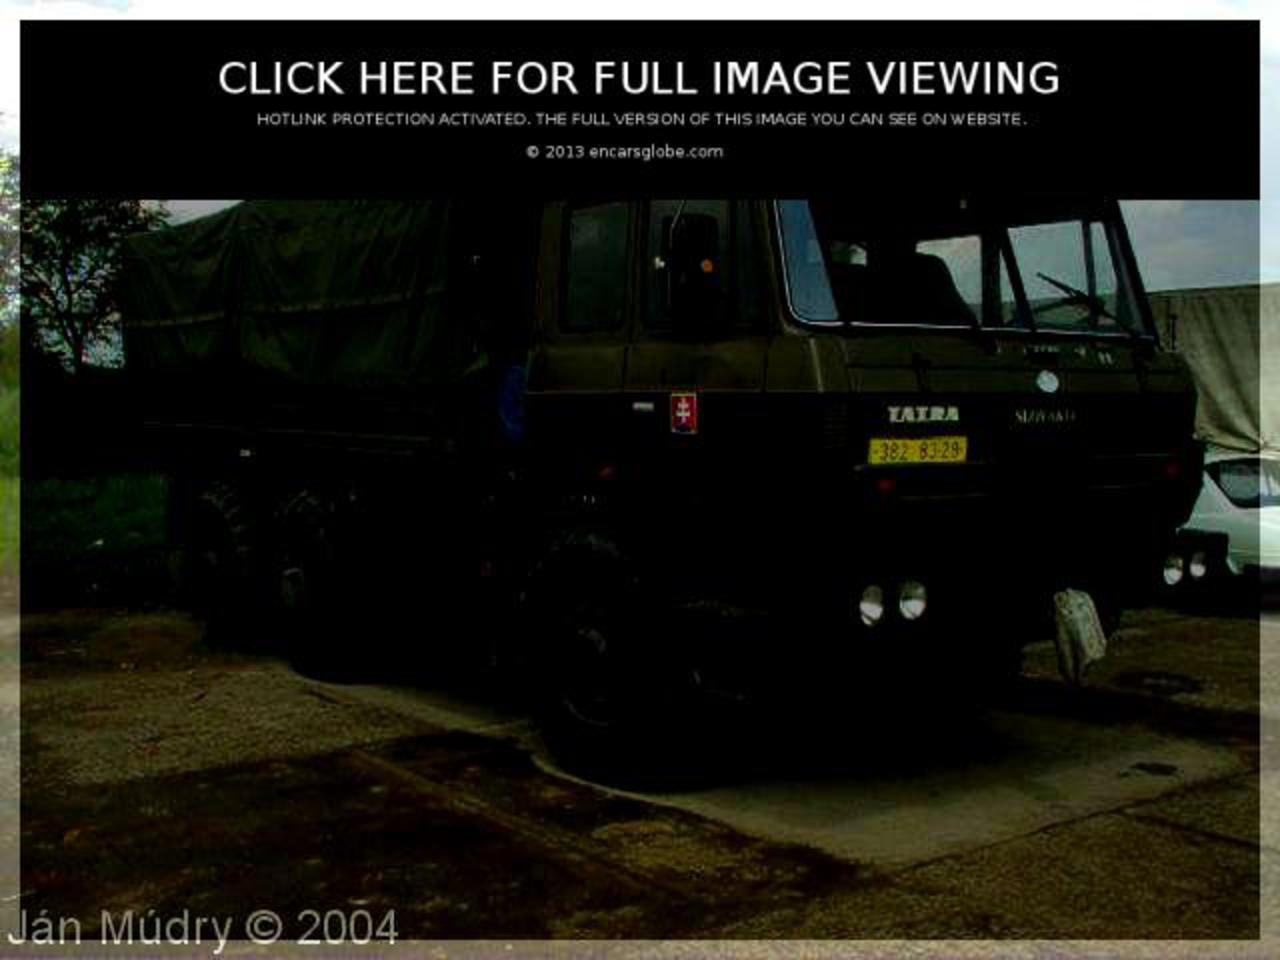 Tatra 815 6x6 Photo Gallery: Photo #09 out of 11, Image Size - 640 ...